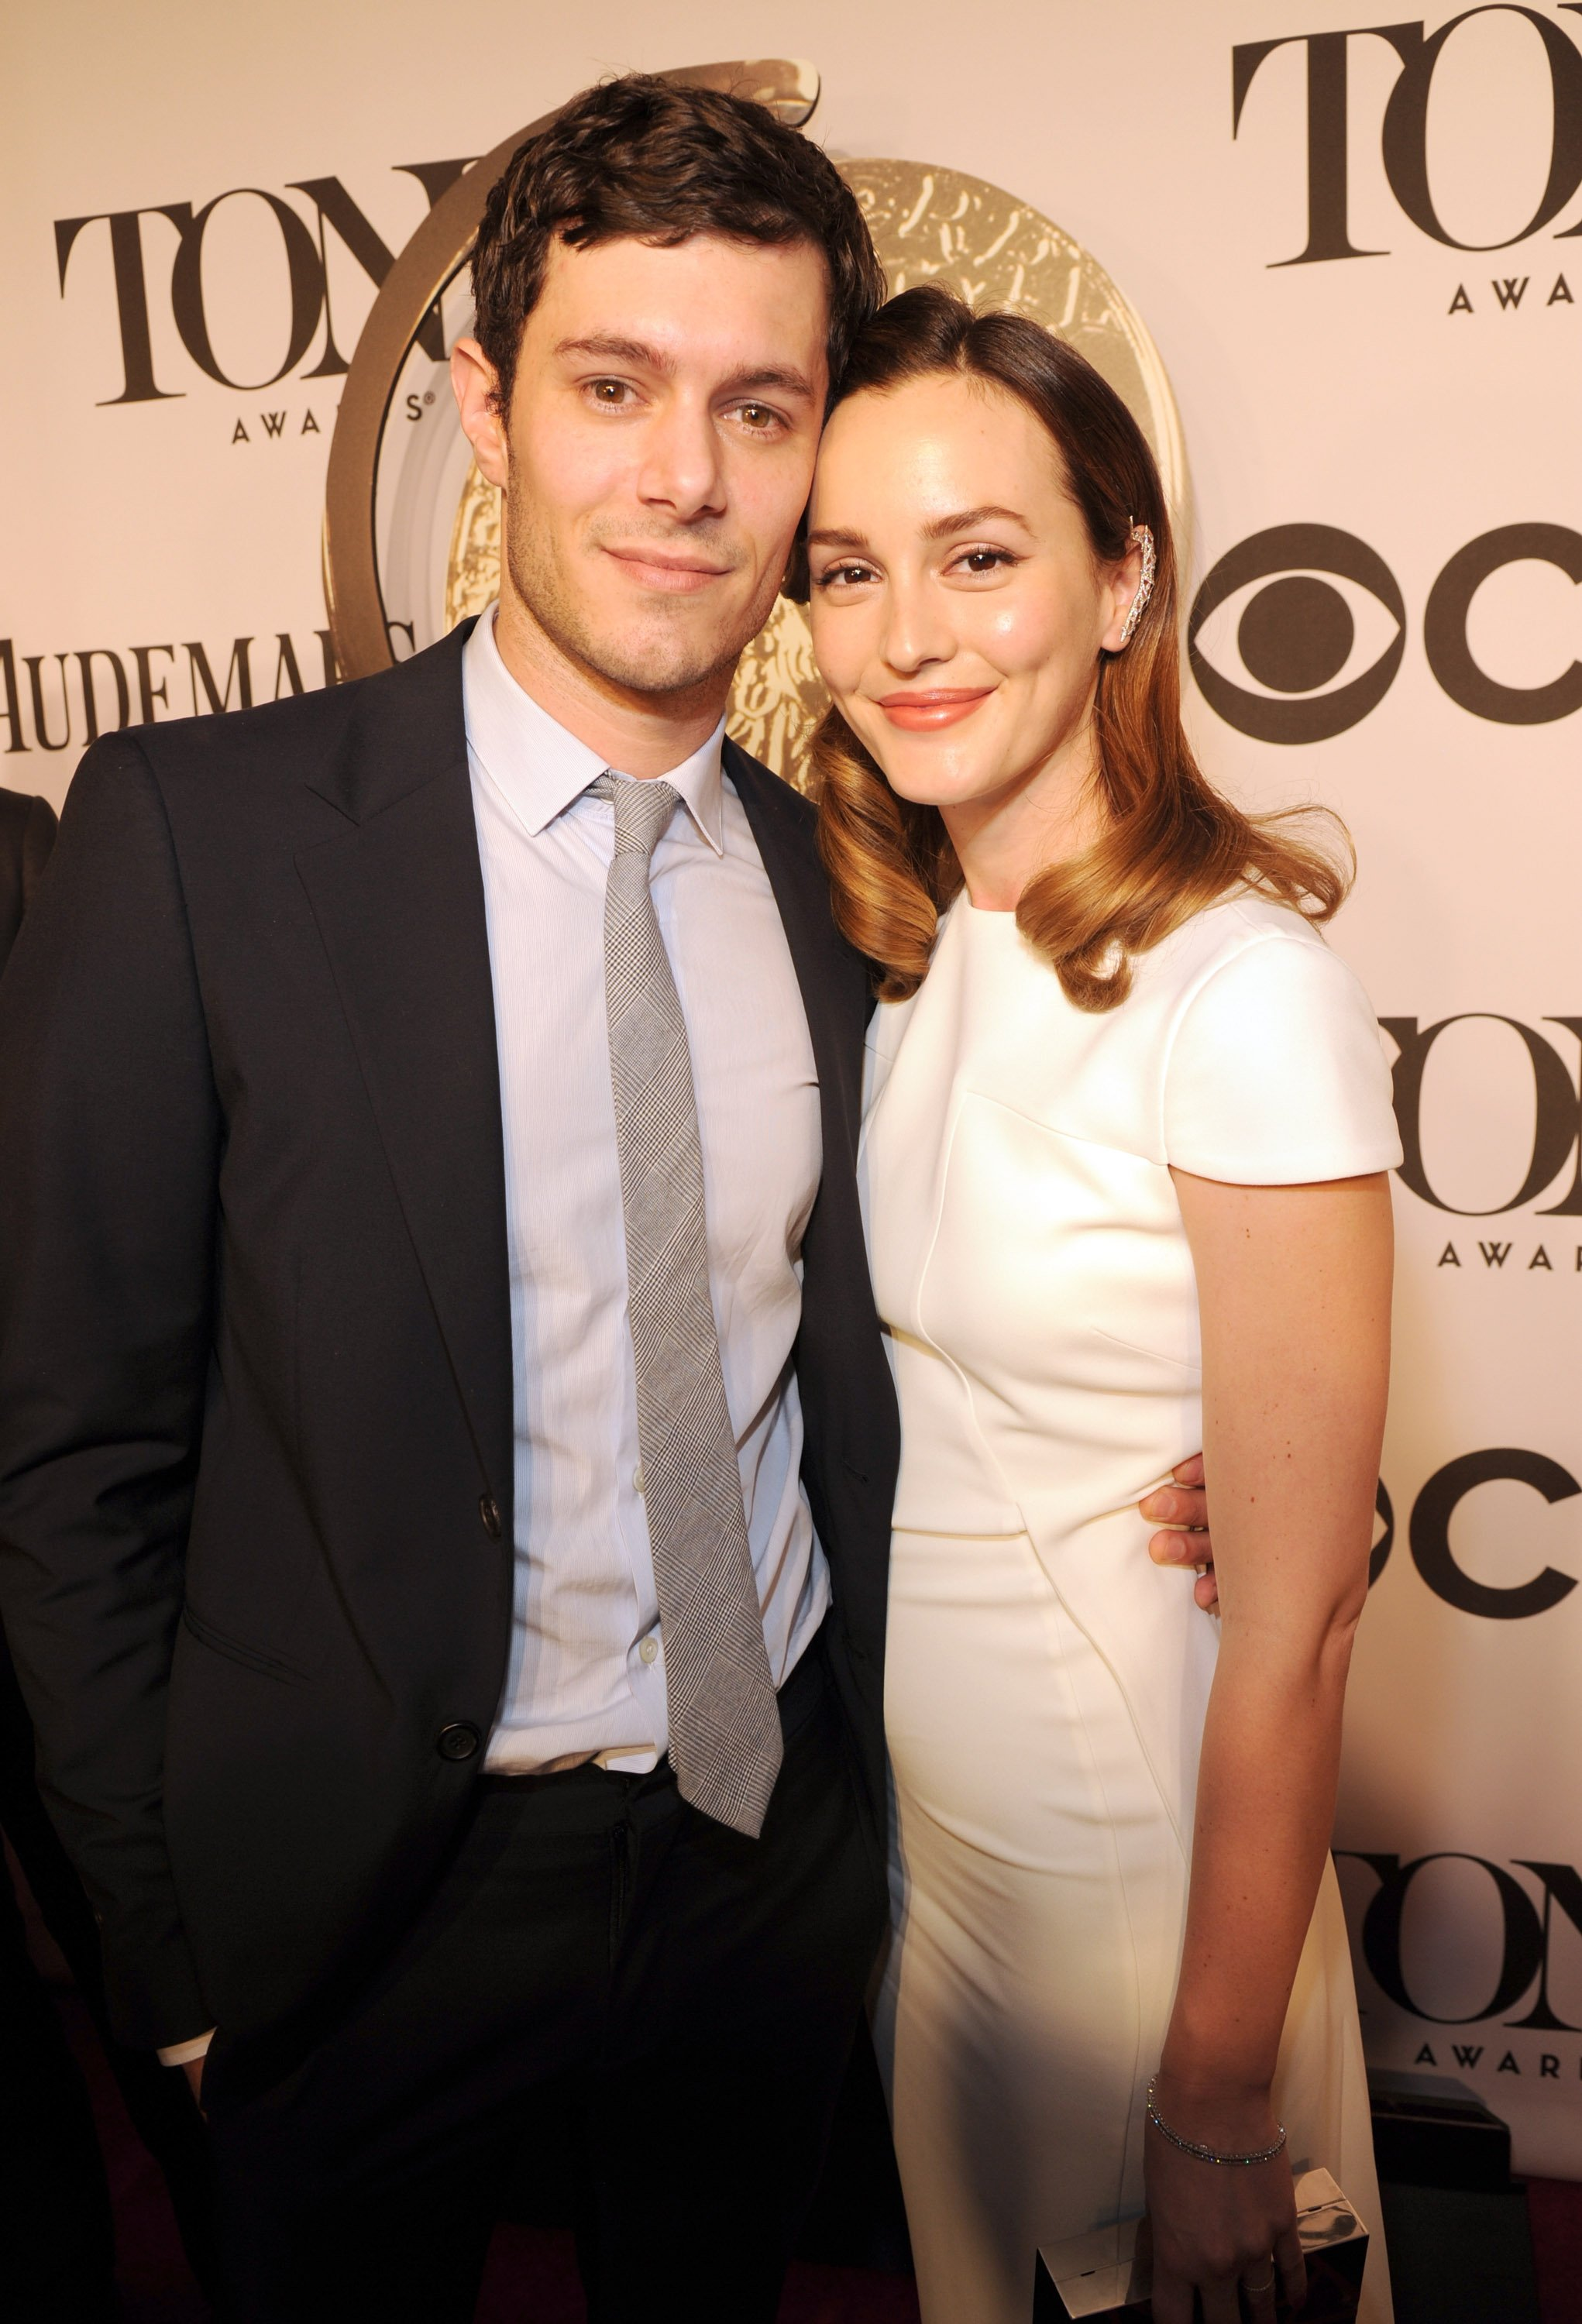 Adam Brody and Leighton Meester attend the 68th Annual Tony Awards in New York City on June 8, 2014 | Photo: Getty Images